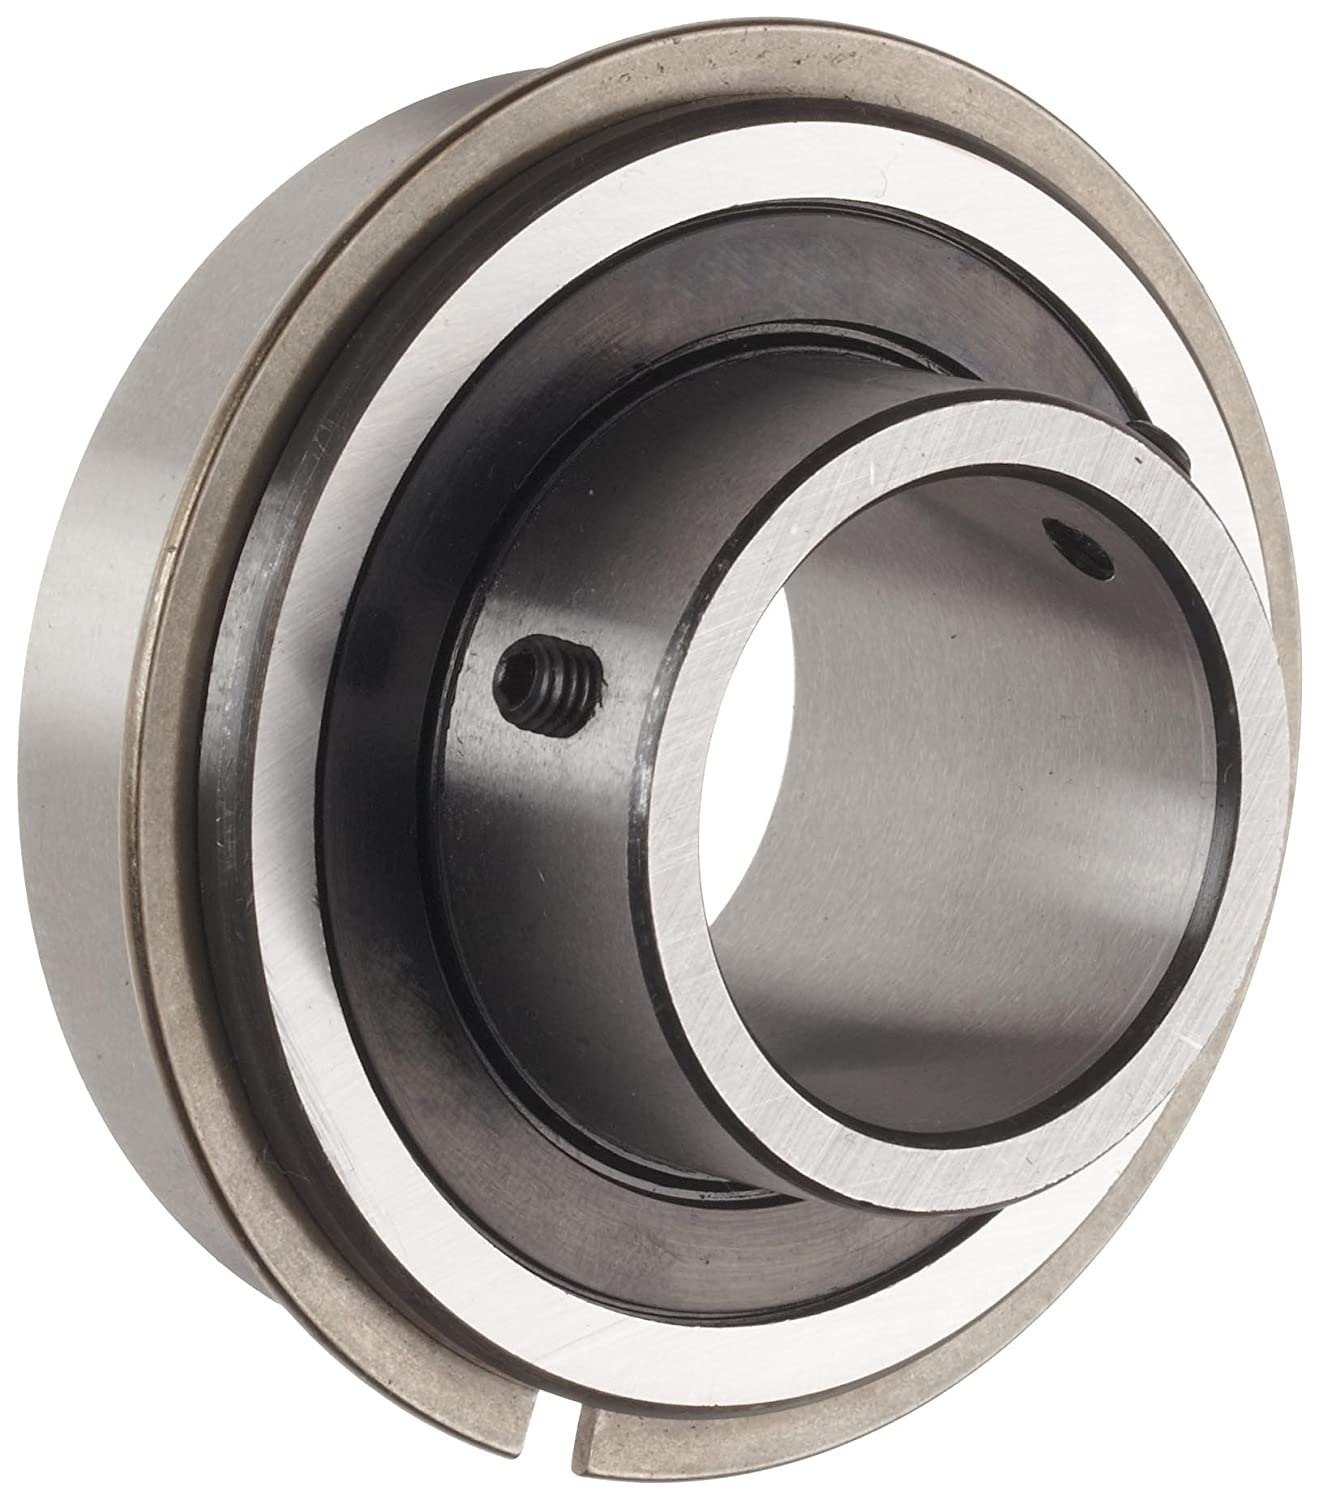 The General 7620 DL Extra Light Extended Inner Ring Bearing, Double Sealed, No Snap Ring, Inch, 1.25' Bore, 2.56' OD, 1.417' Width, 1831 lbs Static Load Capacity, 3070 lbs Dynamic Load Capacity 1.25 Bore 2.56 OD 1.417 Width